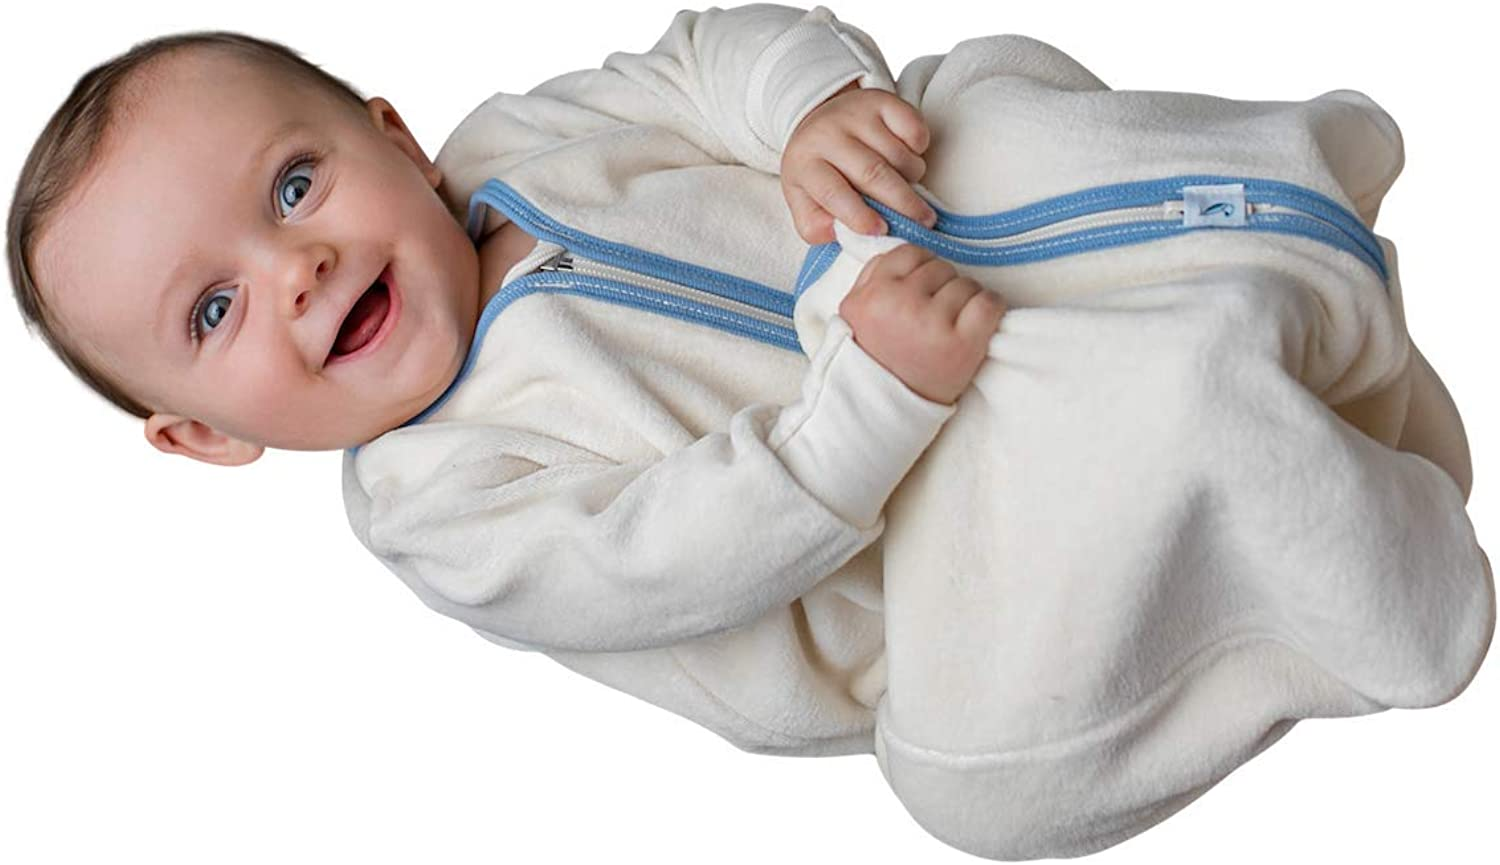 for Toddlers /& Babies Sleeveless CastleWare Baby: Organic Cotton Rib Knit Sleeper Bag /& Wearable Blanket 3 Months-4 Years